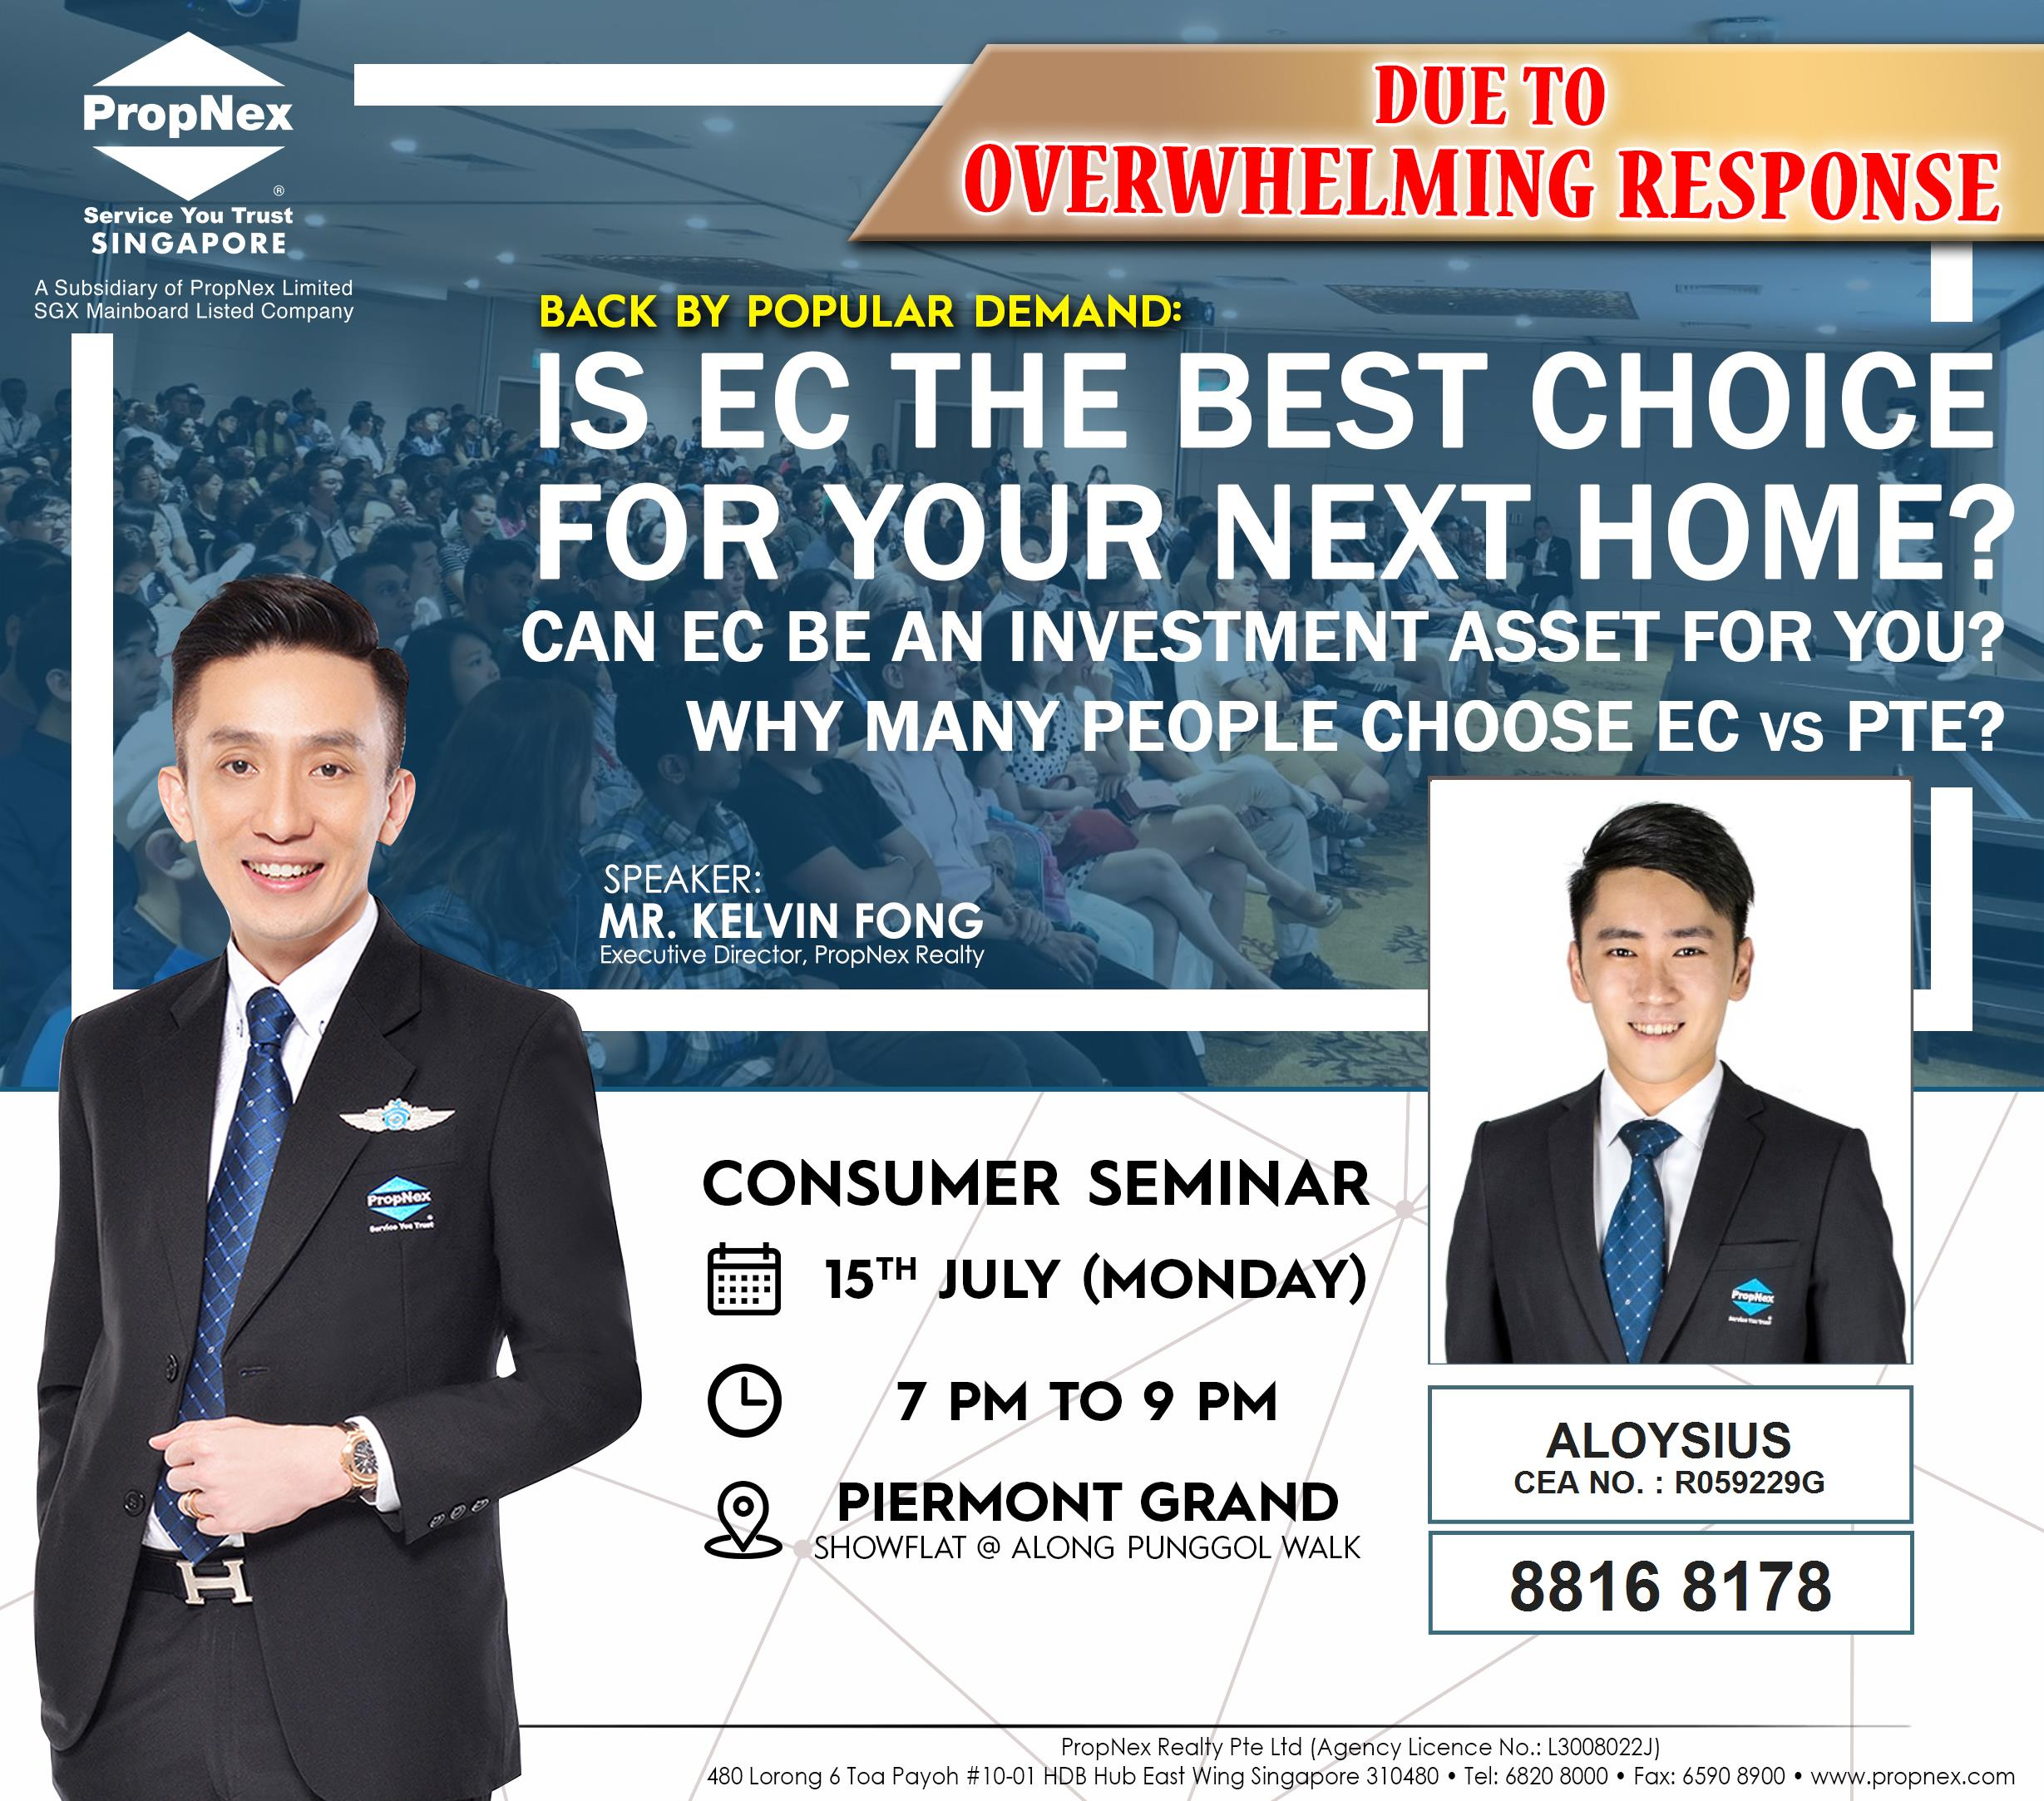 Propnex Consumer Seminar: IS EC THE BEST CHOICE FOR YOUR NEXT HOME? Can EC be an Investment Asset for you? Why many people choose EC VS PTE?